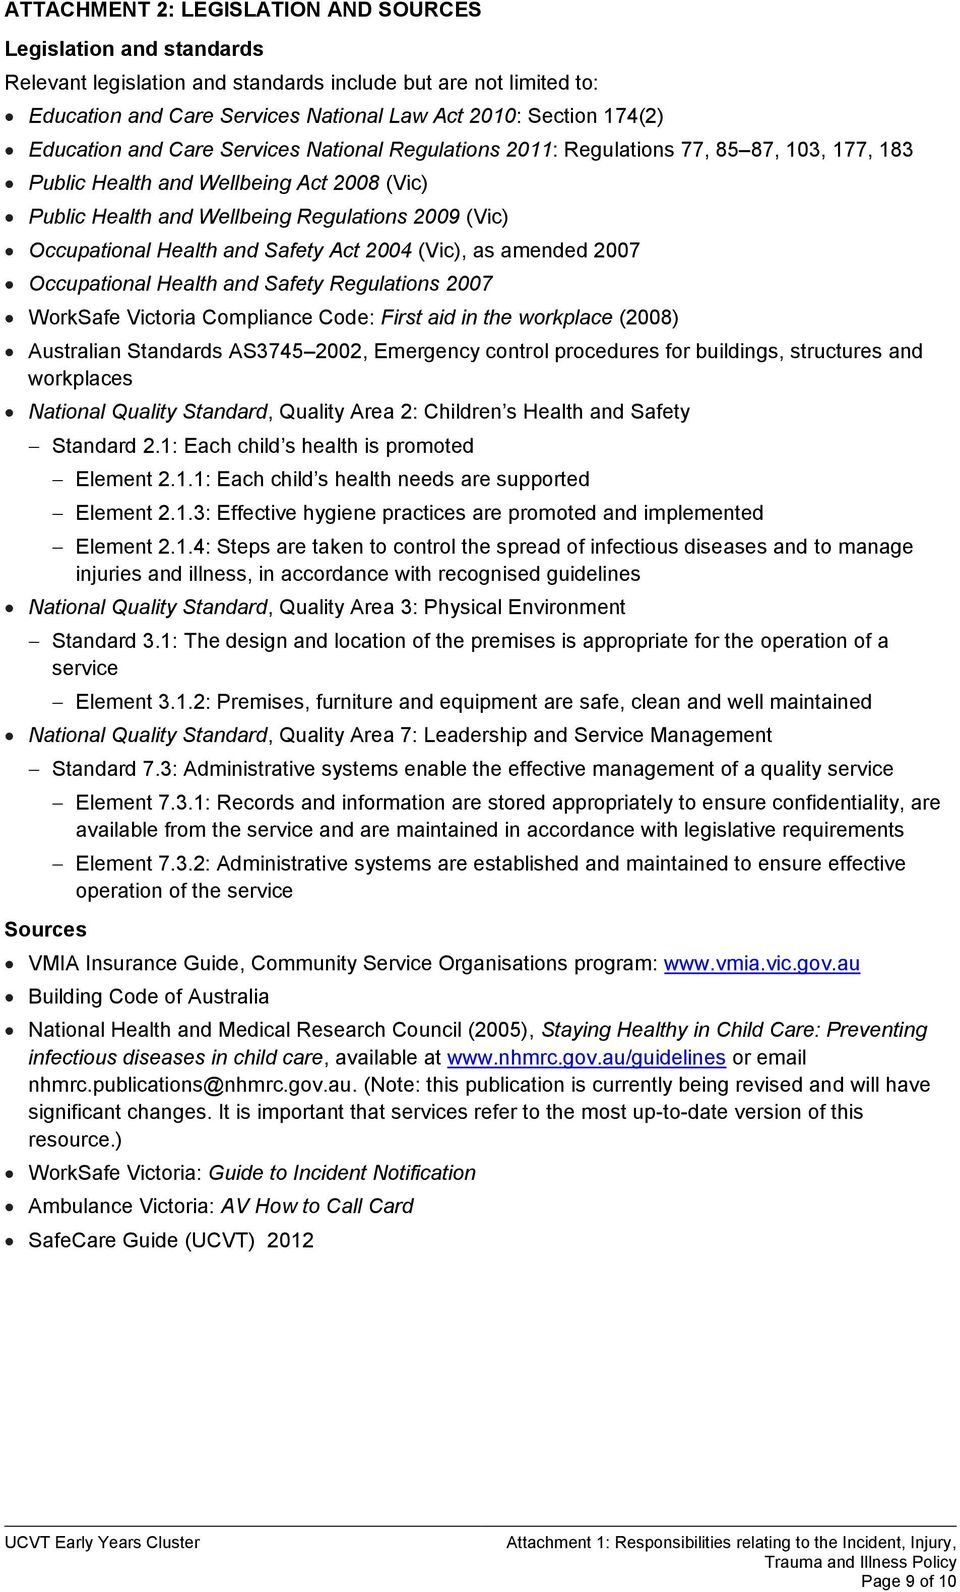 Health and Safety Act 2004 (Vic), as amended 2007 Occupational Health and Safety Regulations 2007 WorkSafe Victoria Compliance Code: First aid in the workplace (2008) Australian Standards AS3745